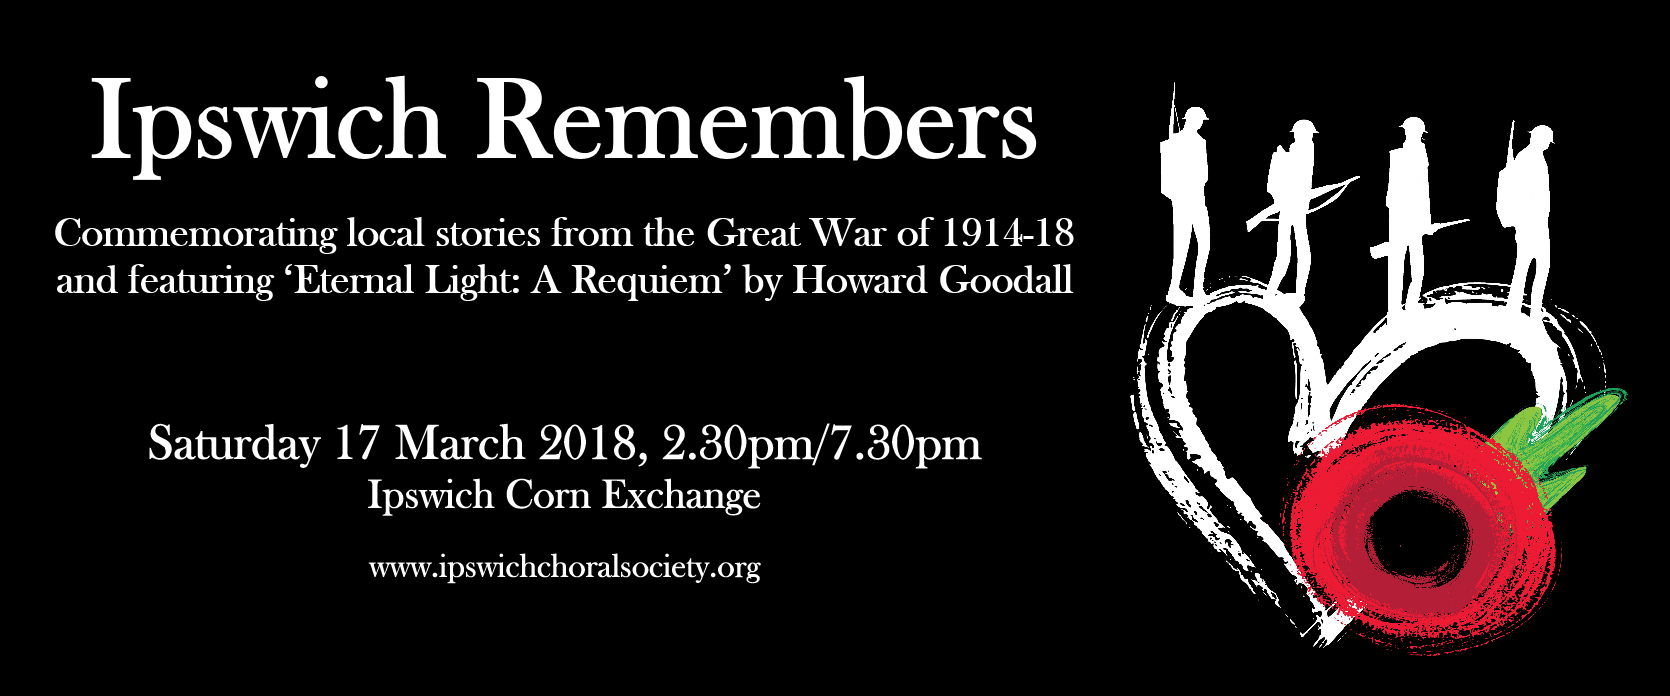 IpswichRemembers_web-banner.png?mtime=20180122133103#asset:12106